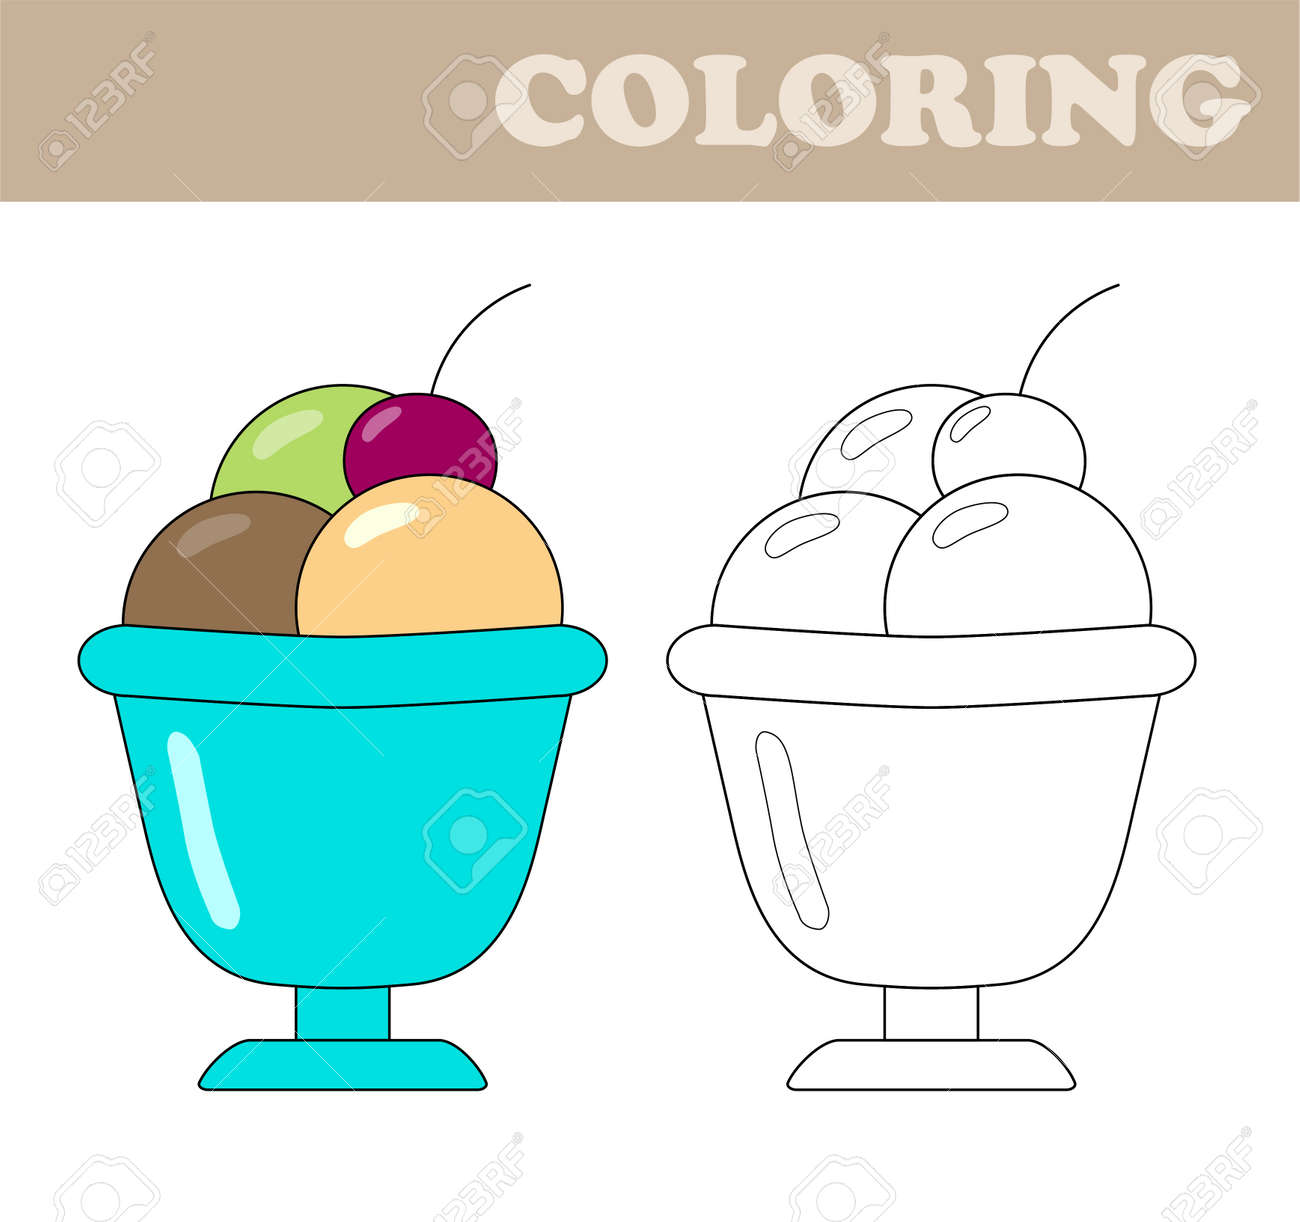 Coloring Page With Ice Cream Coloring Book For Children